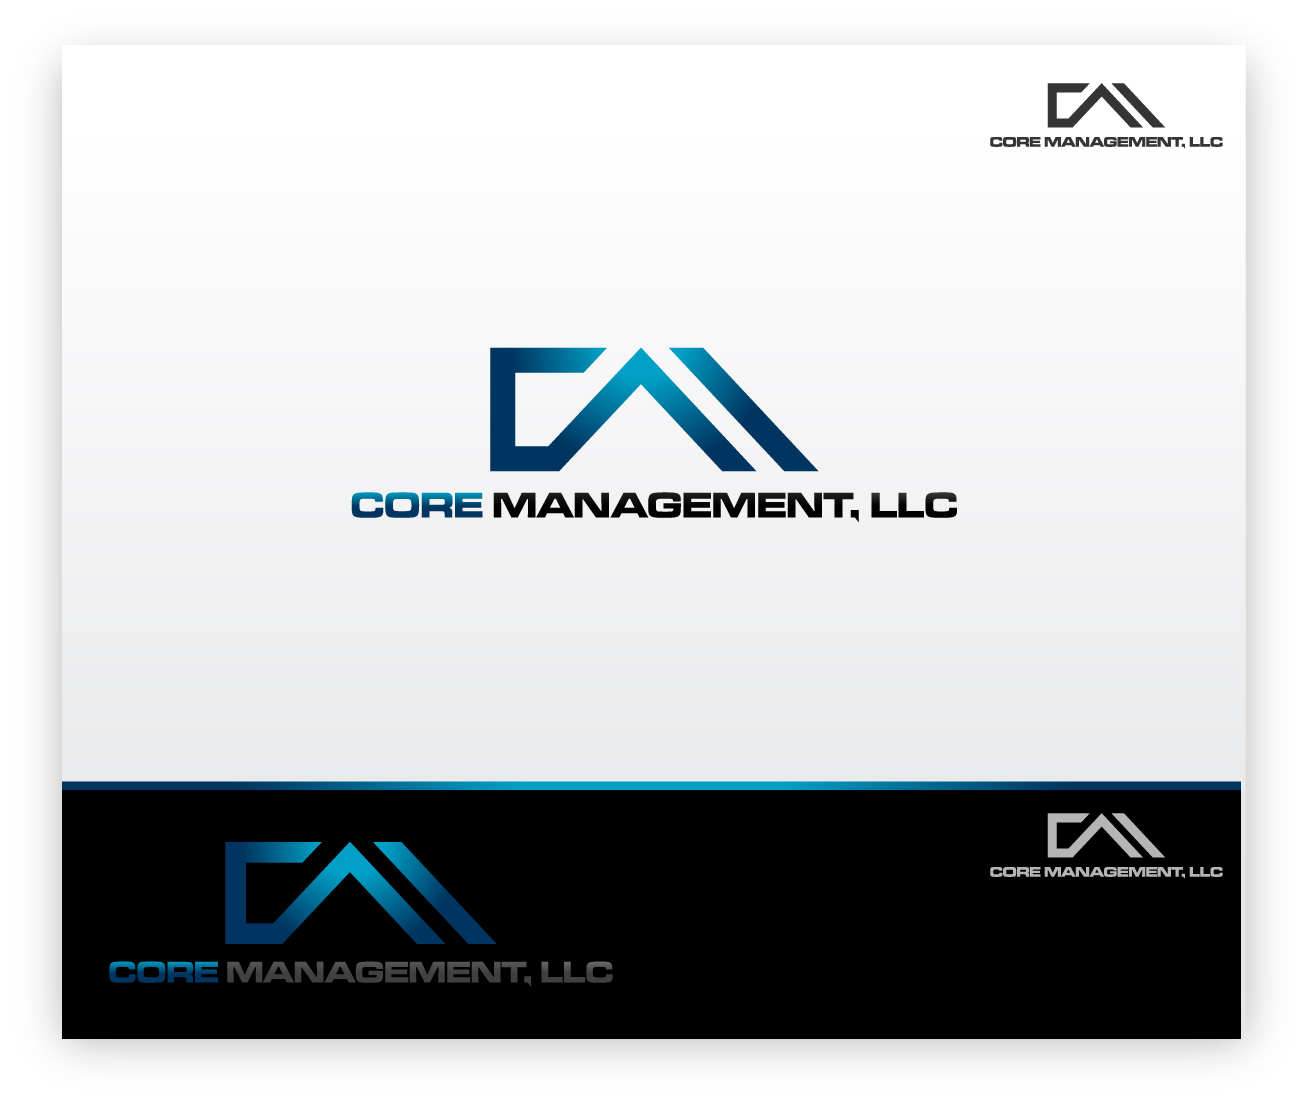 Logo Design by zoiDesign - Entry No. 25 in the Logo Design Contest Creative Logo Design for CORE Management, LLC.